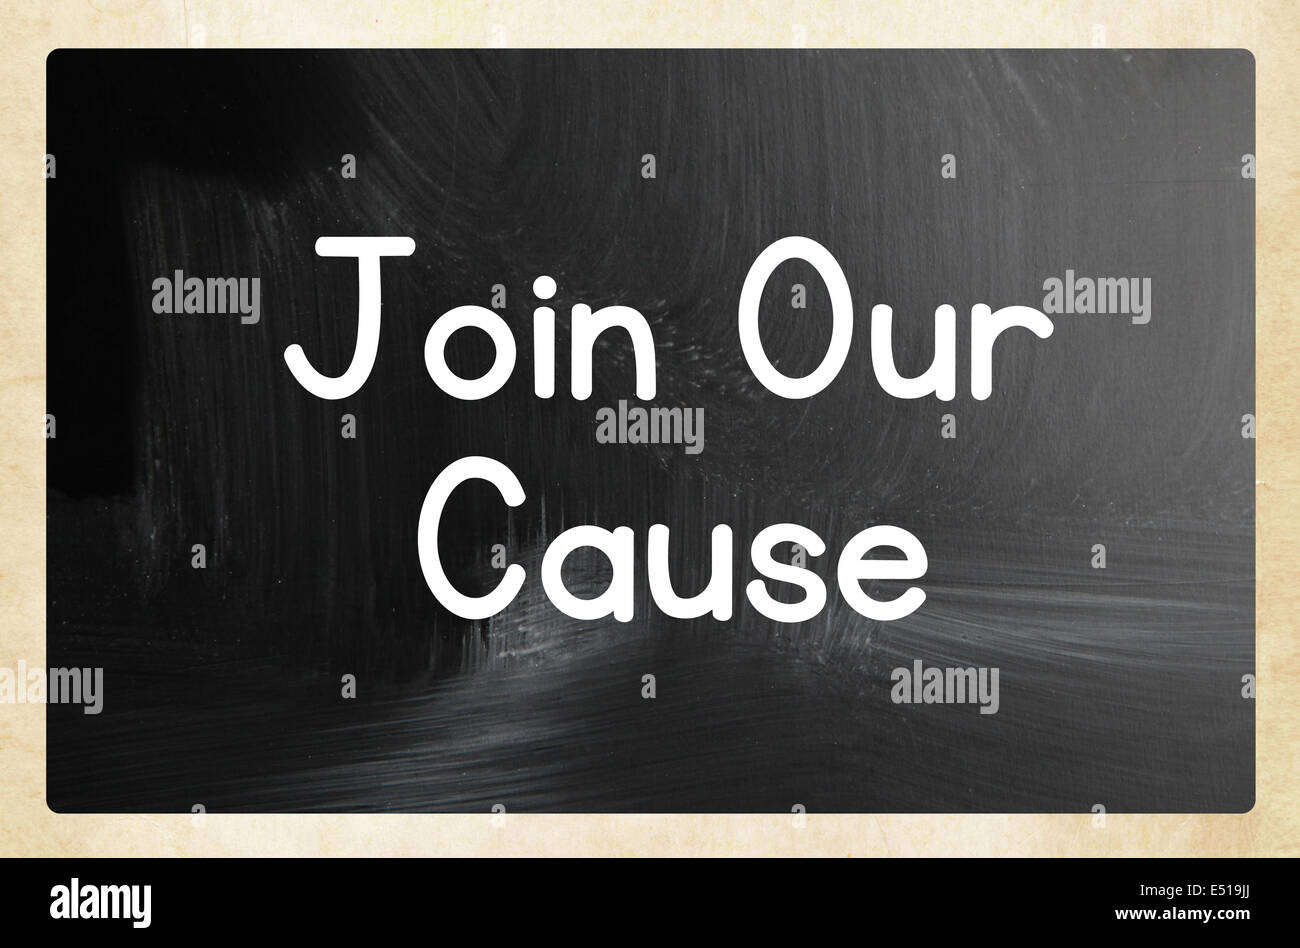 join our cause concept - Stock Image